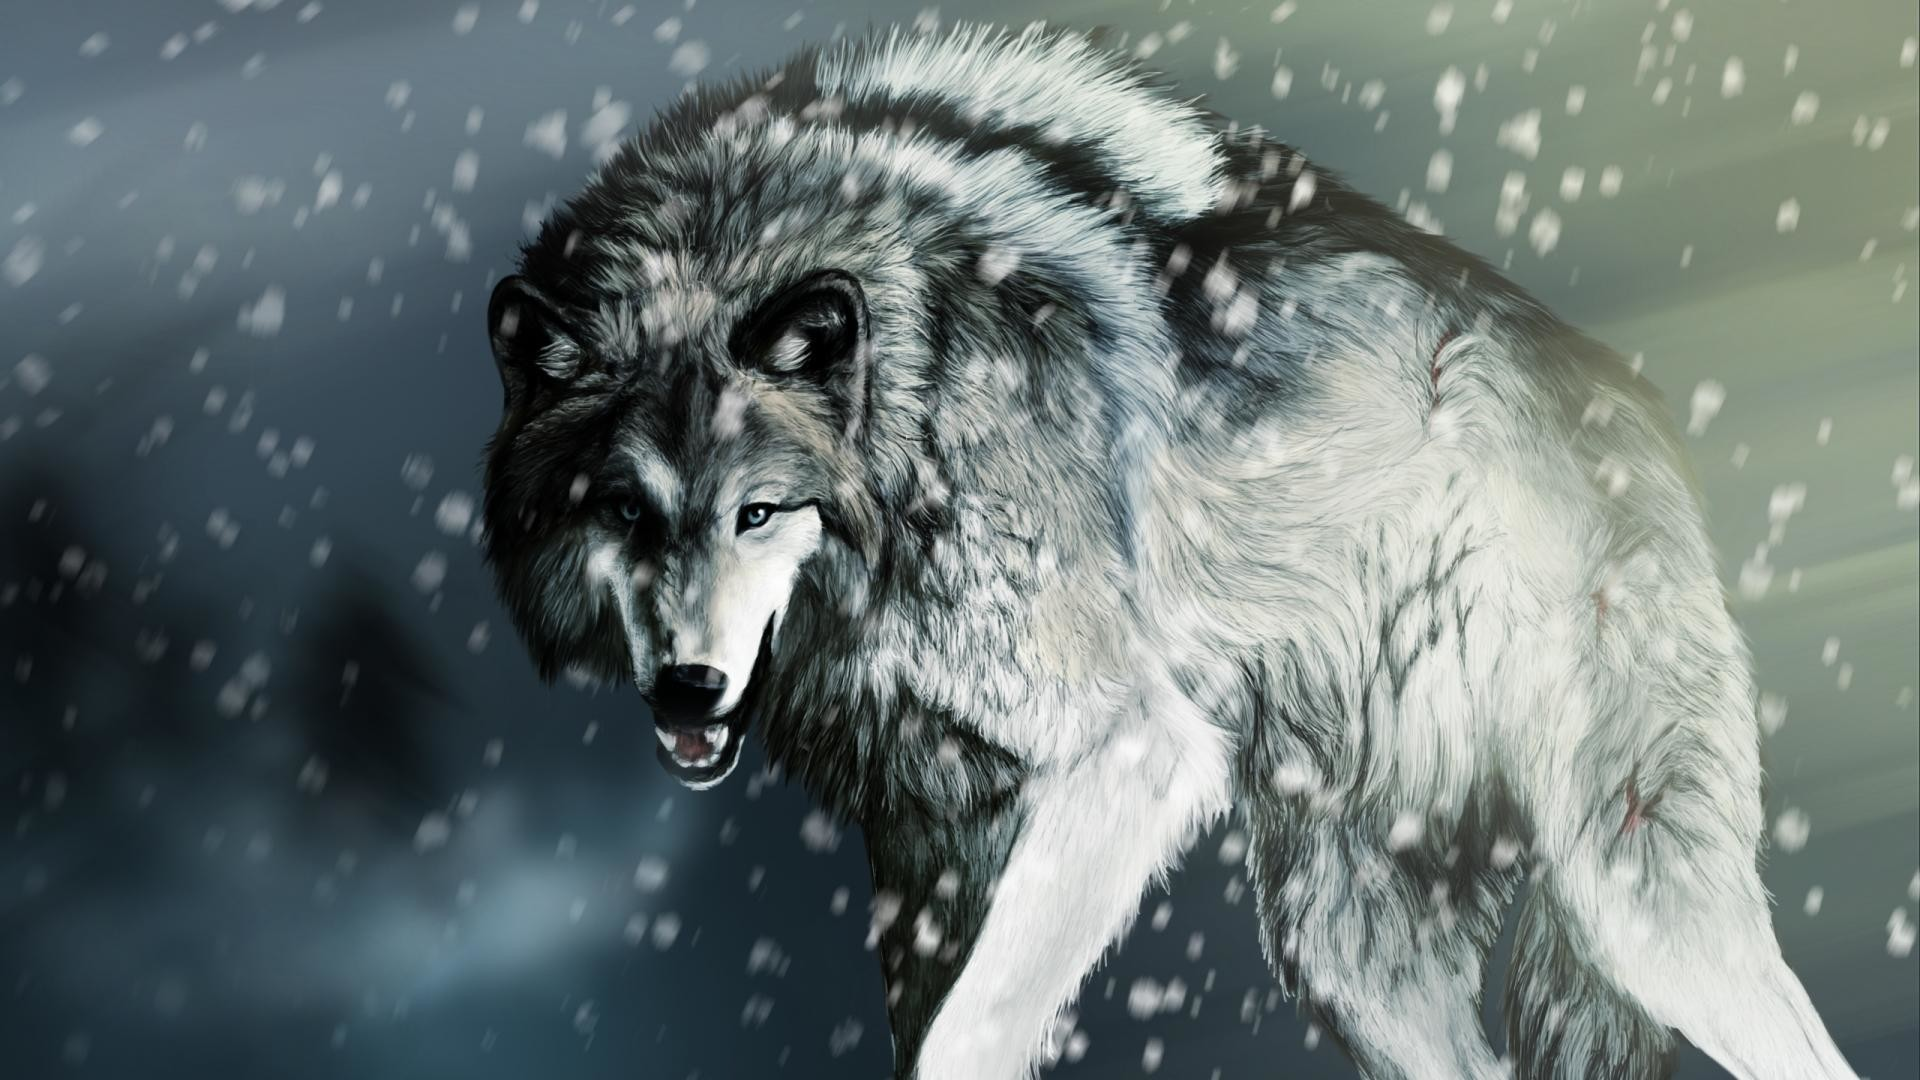 1920x1080 Gray Wolf Wallpaper | Gray Wolf Images Free | Cool Wallpapers